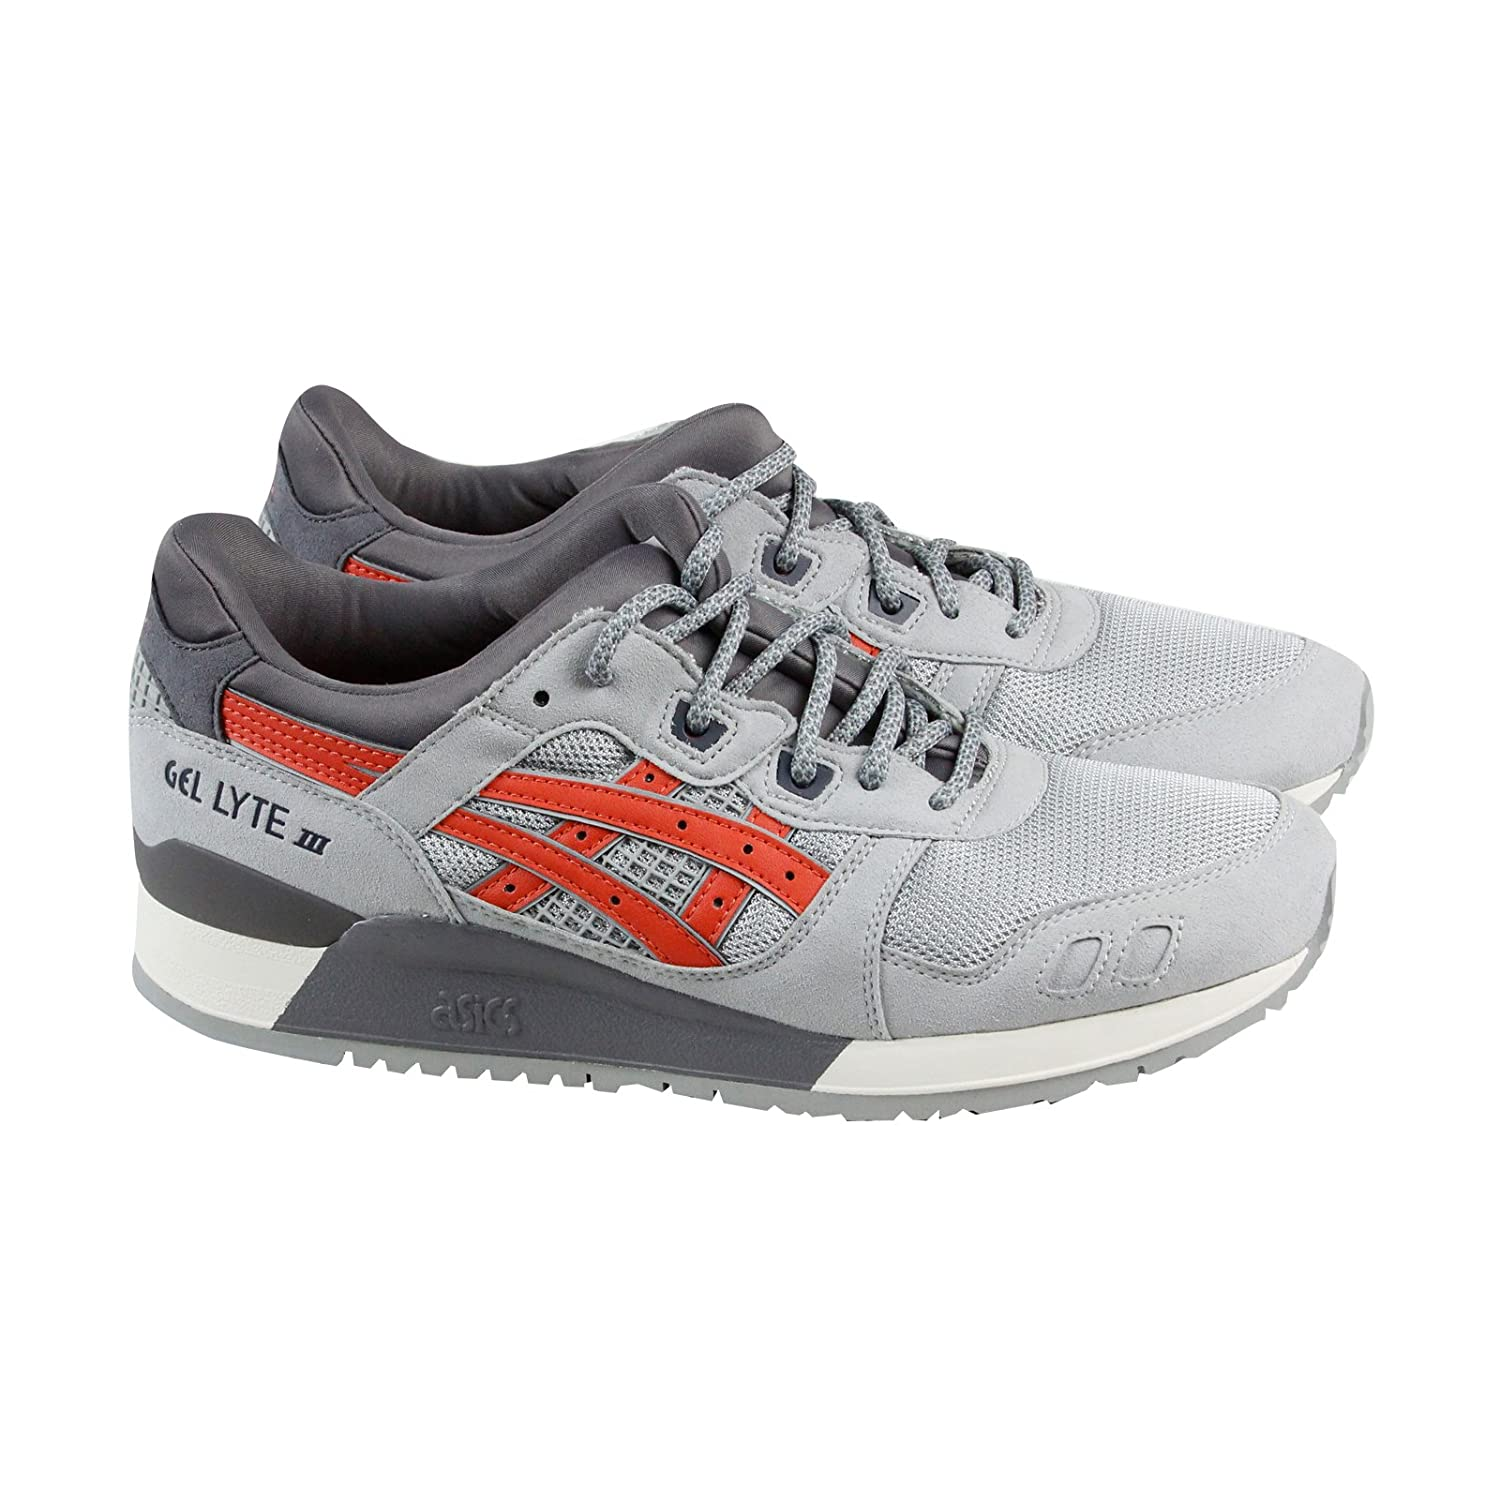 ASICS Men's Gel-Lyte III Running Shoe B0778W4CH2 11.5 M US|Light Grey / Chili